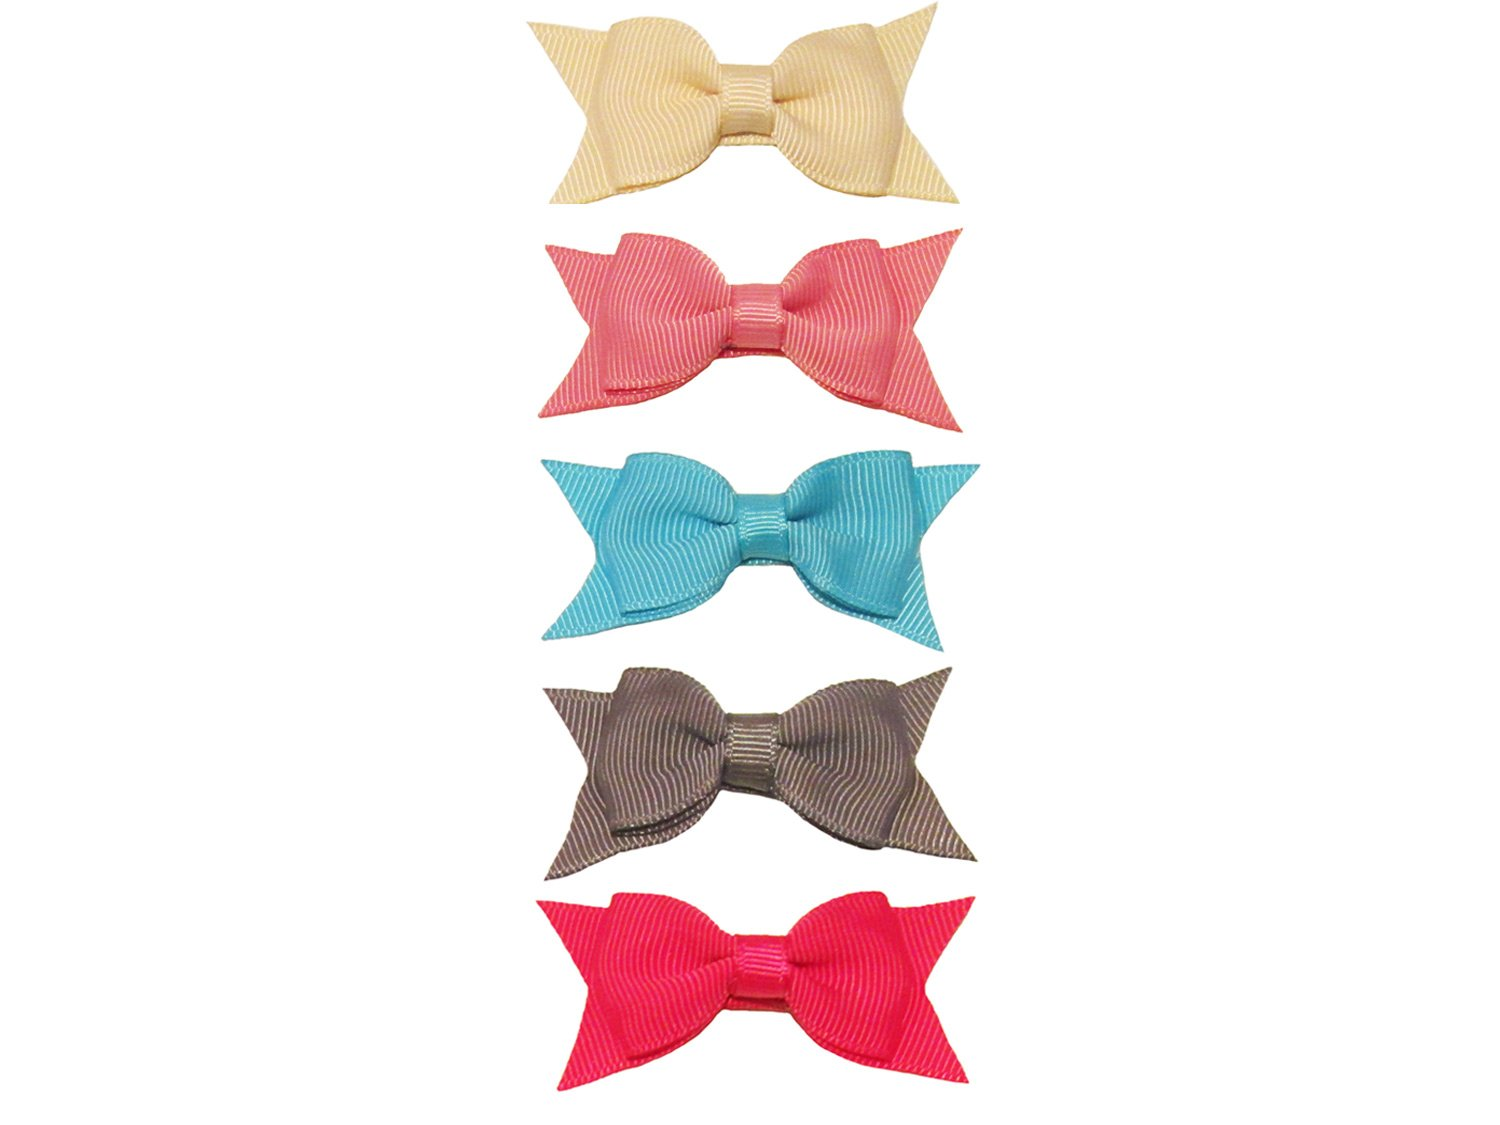 3f456fefe2cd Baby Wisp 5 Cadeau Hair Bows Baby Girls Toddlers Hair Clips - Under The Sea  Gift Set  Amazon.co.uk  Baby